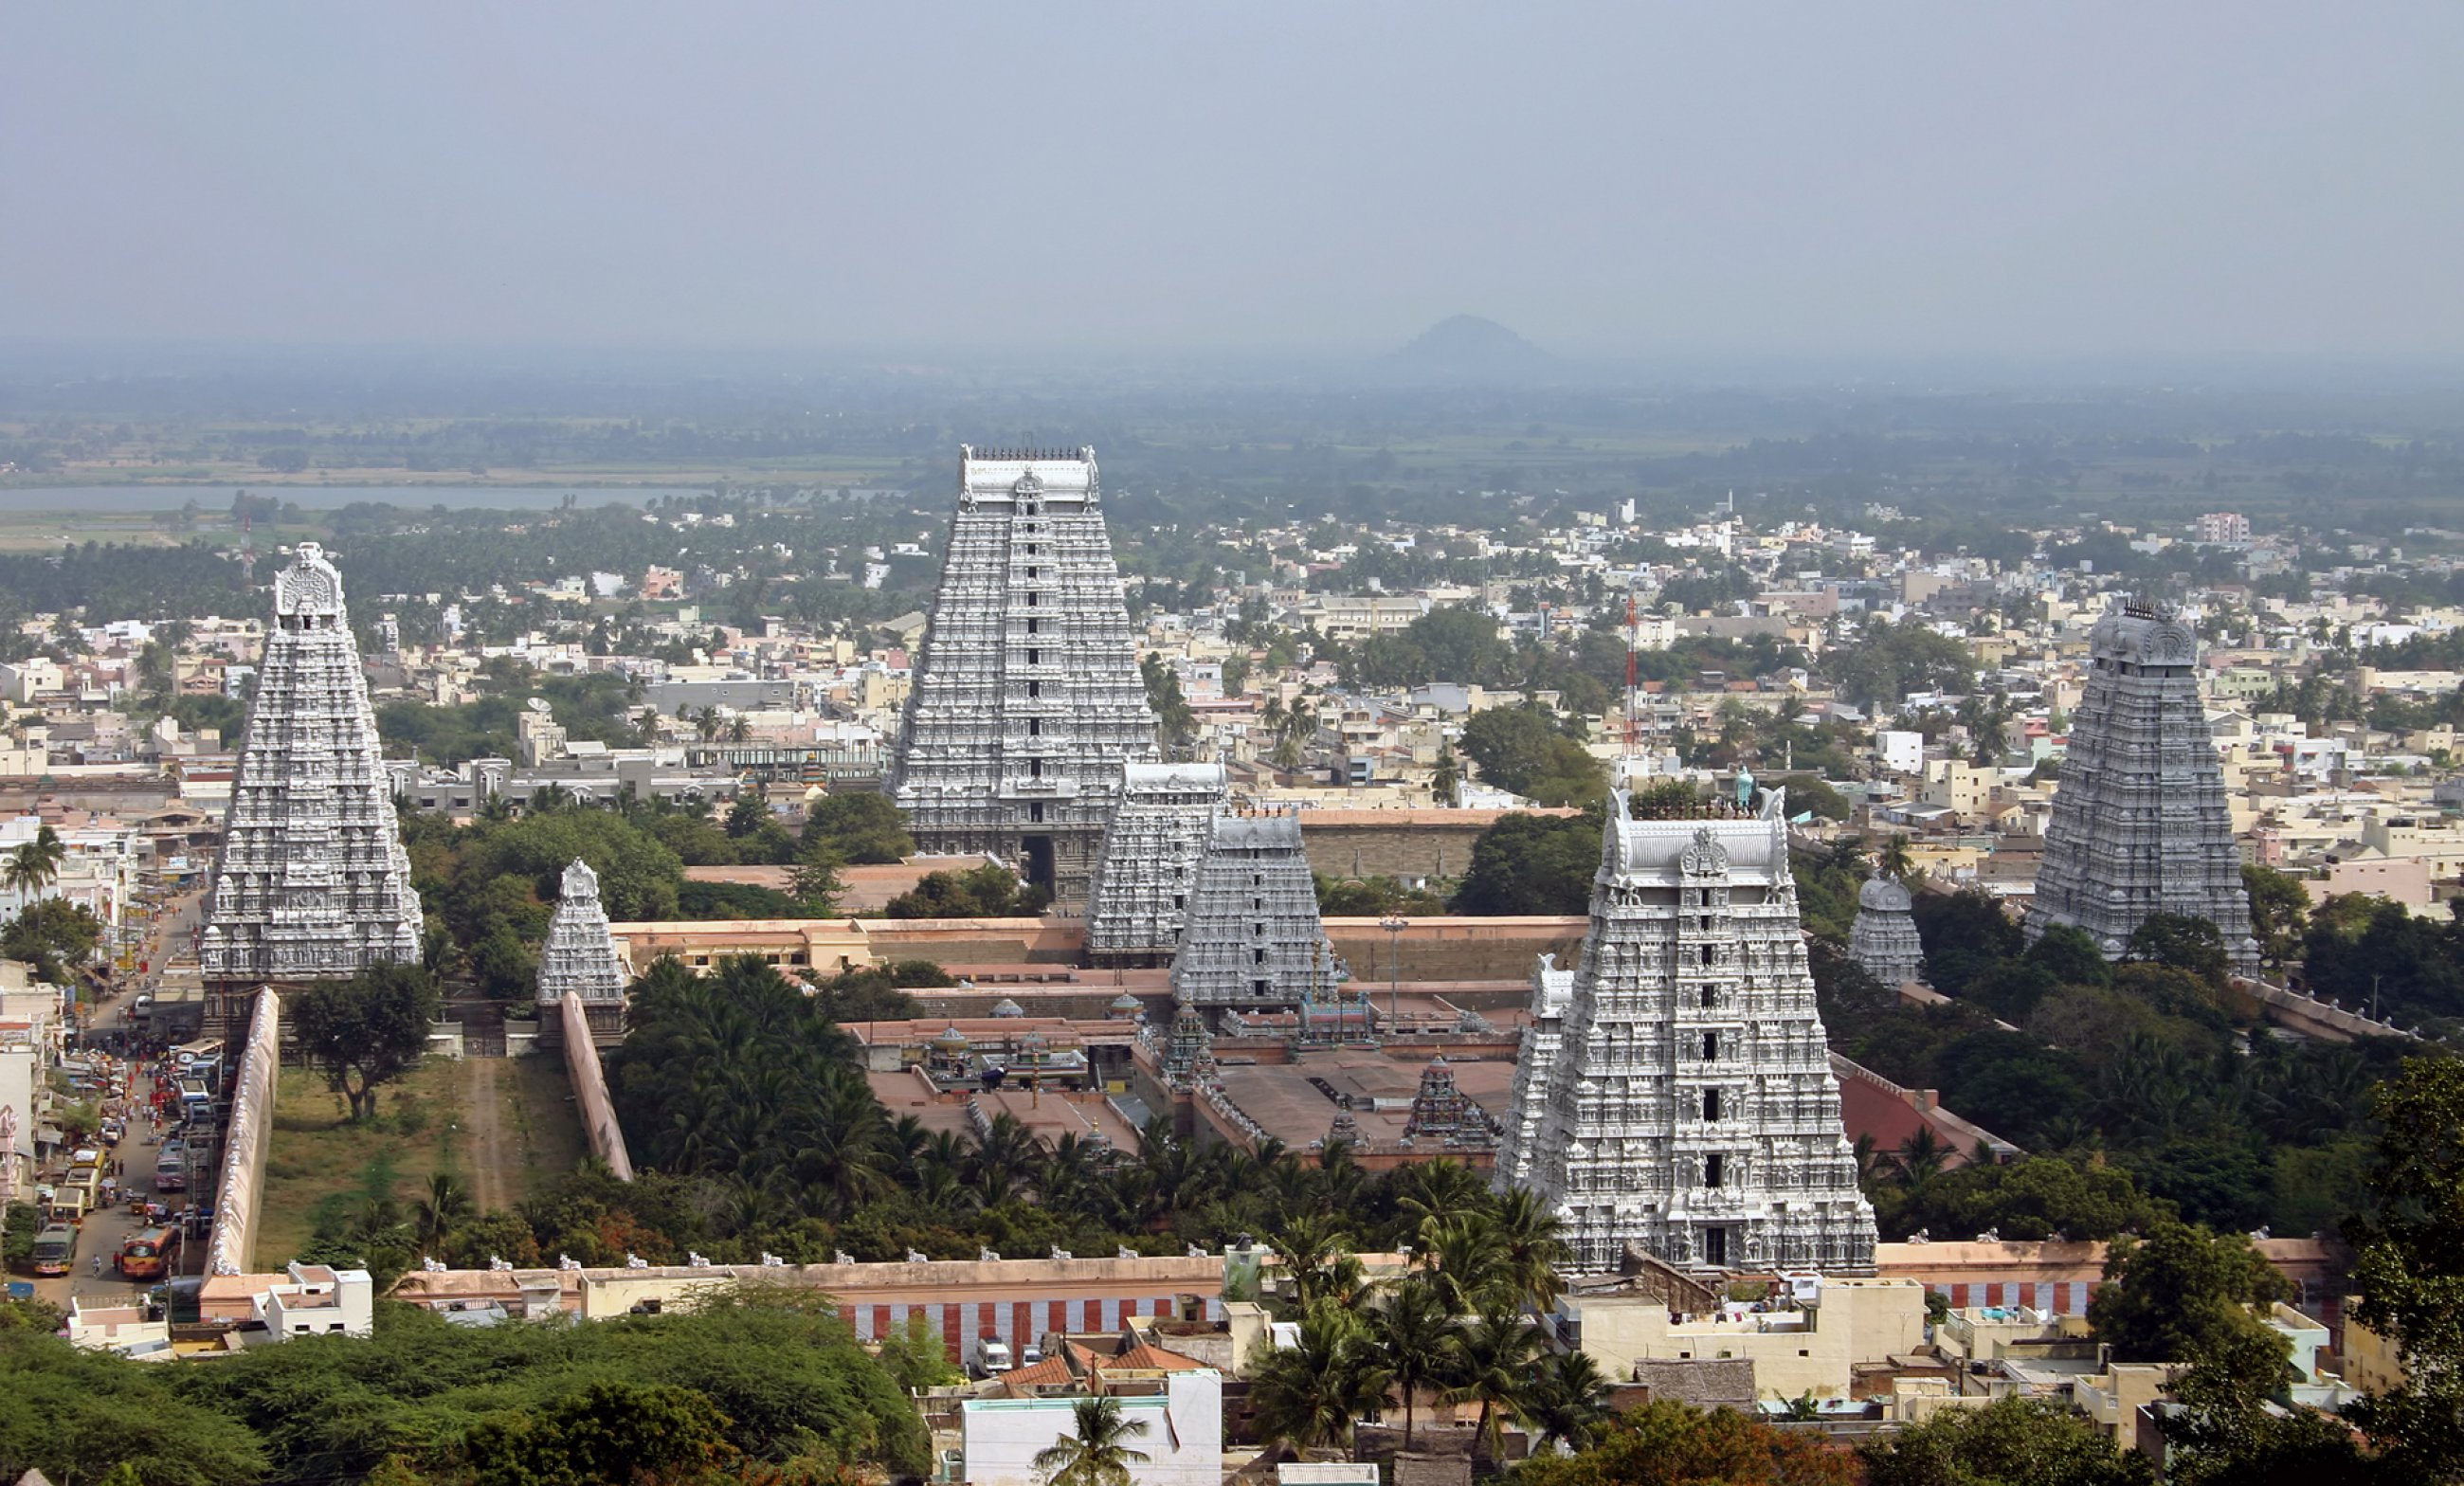 https://bubo.sk/uploads/galleries/4903/ji-tiruvannamalai-shutterstock-2437654.jpg